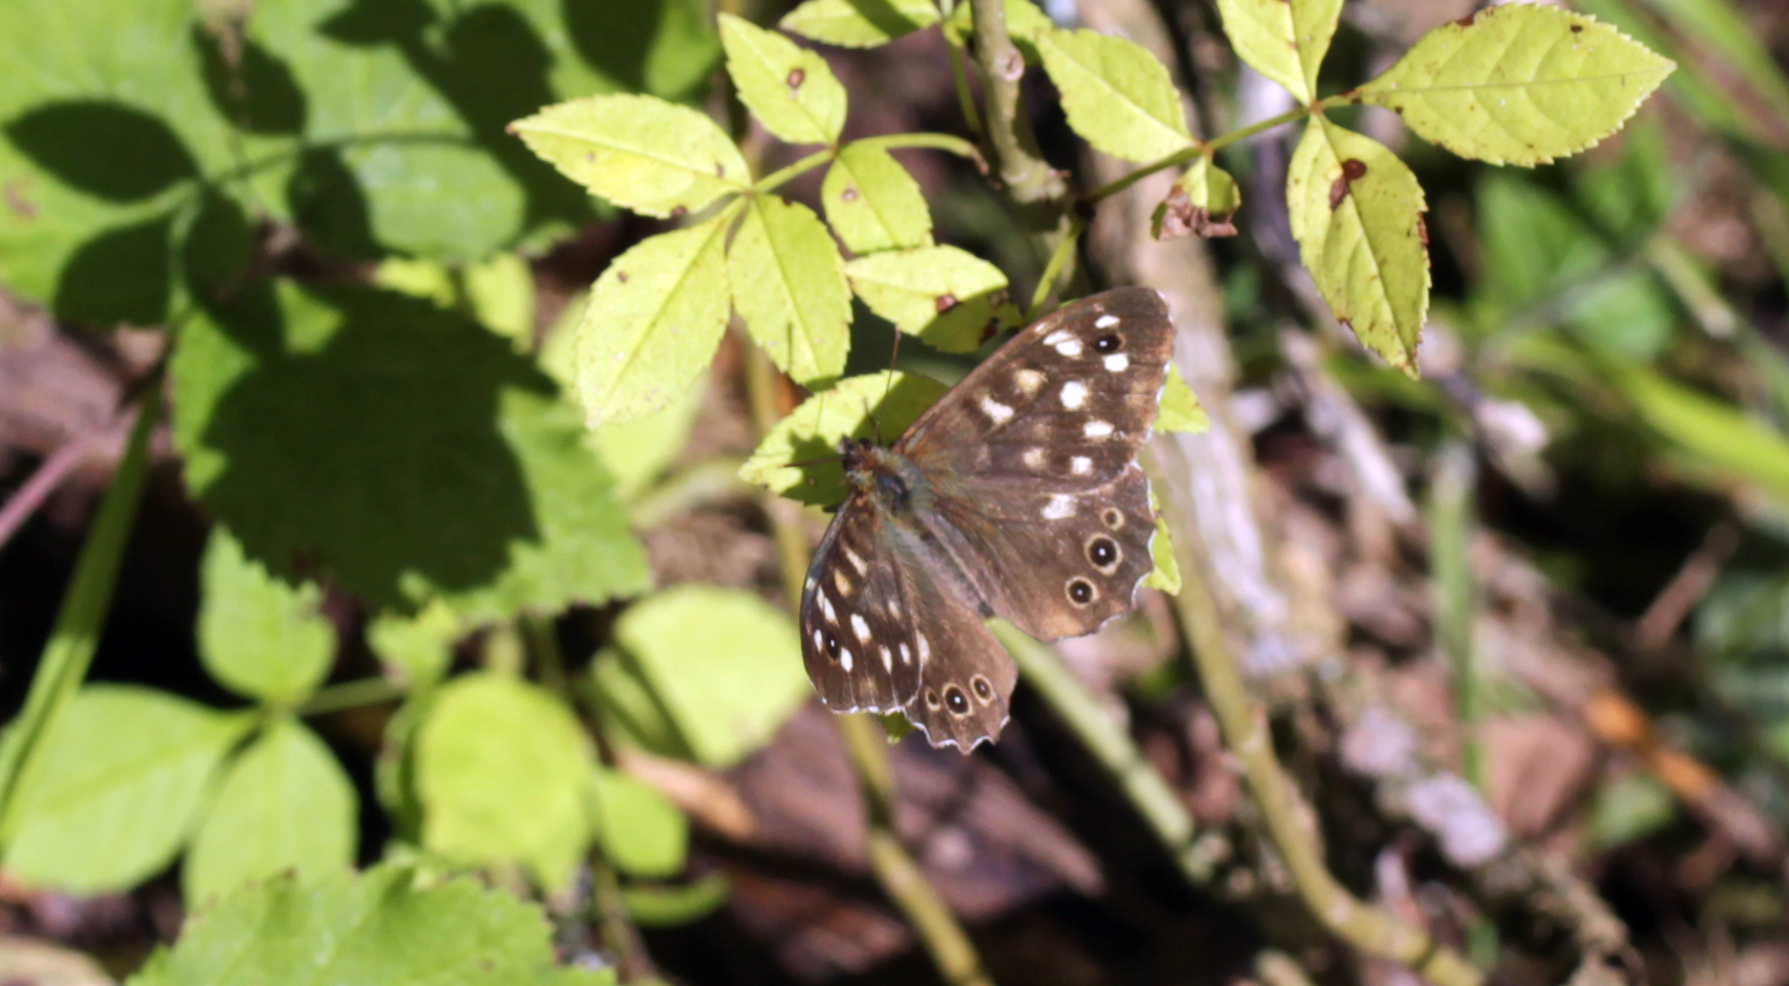 Butterflies, Speckled Wood, September 2017